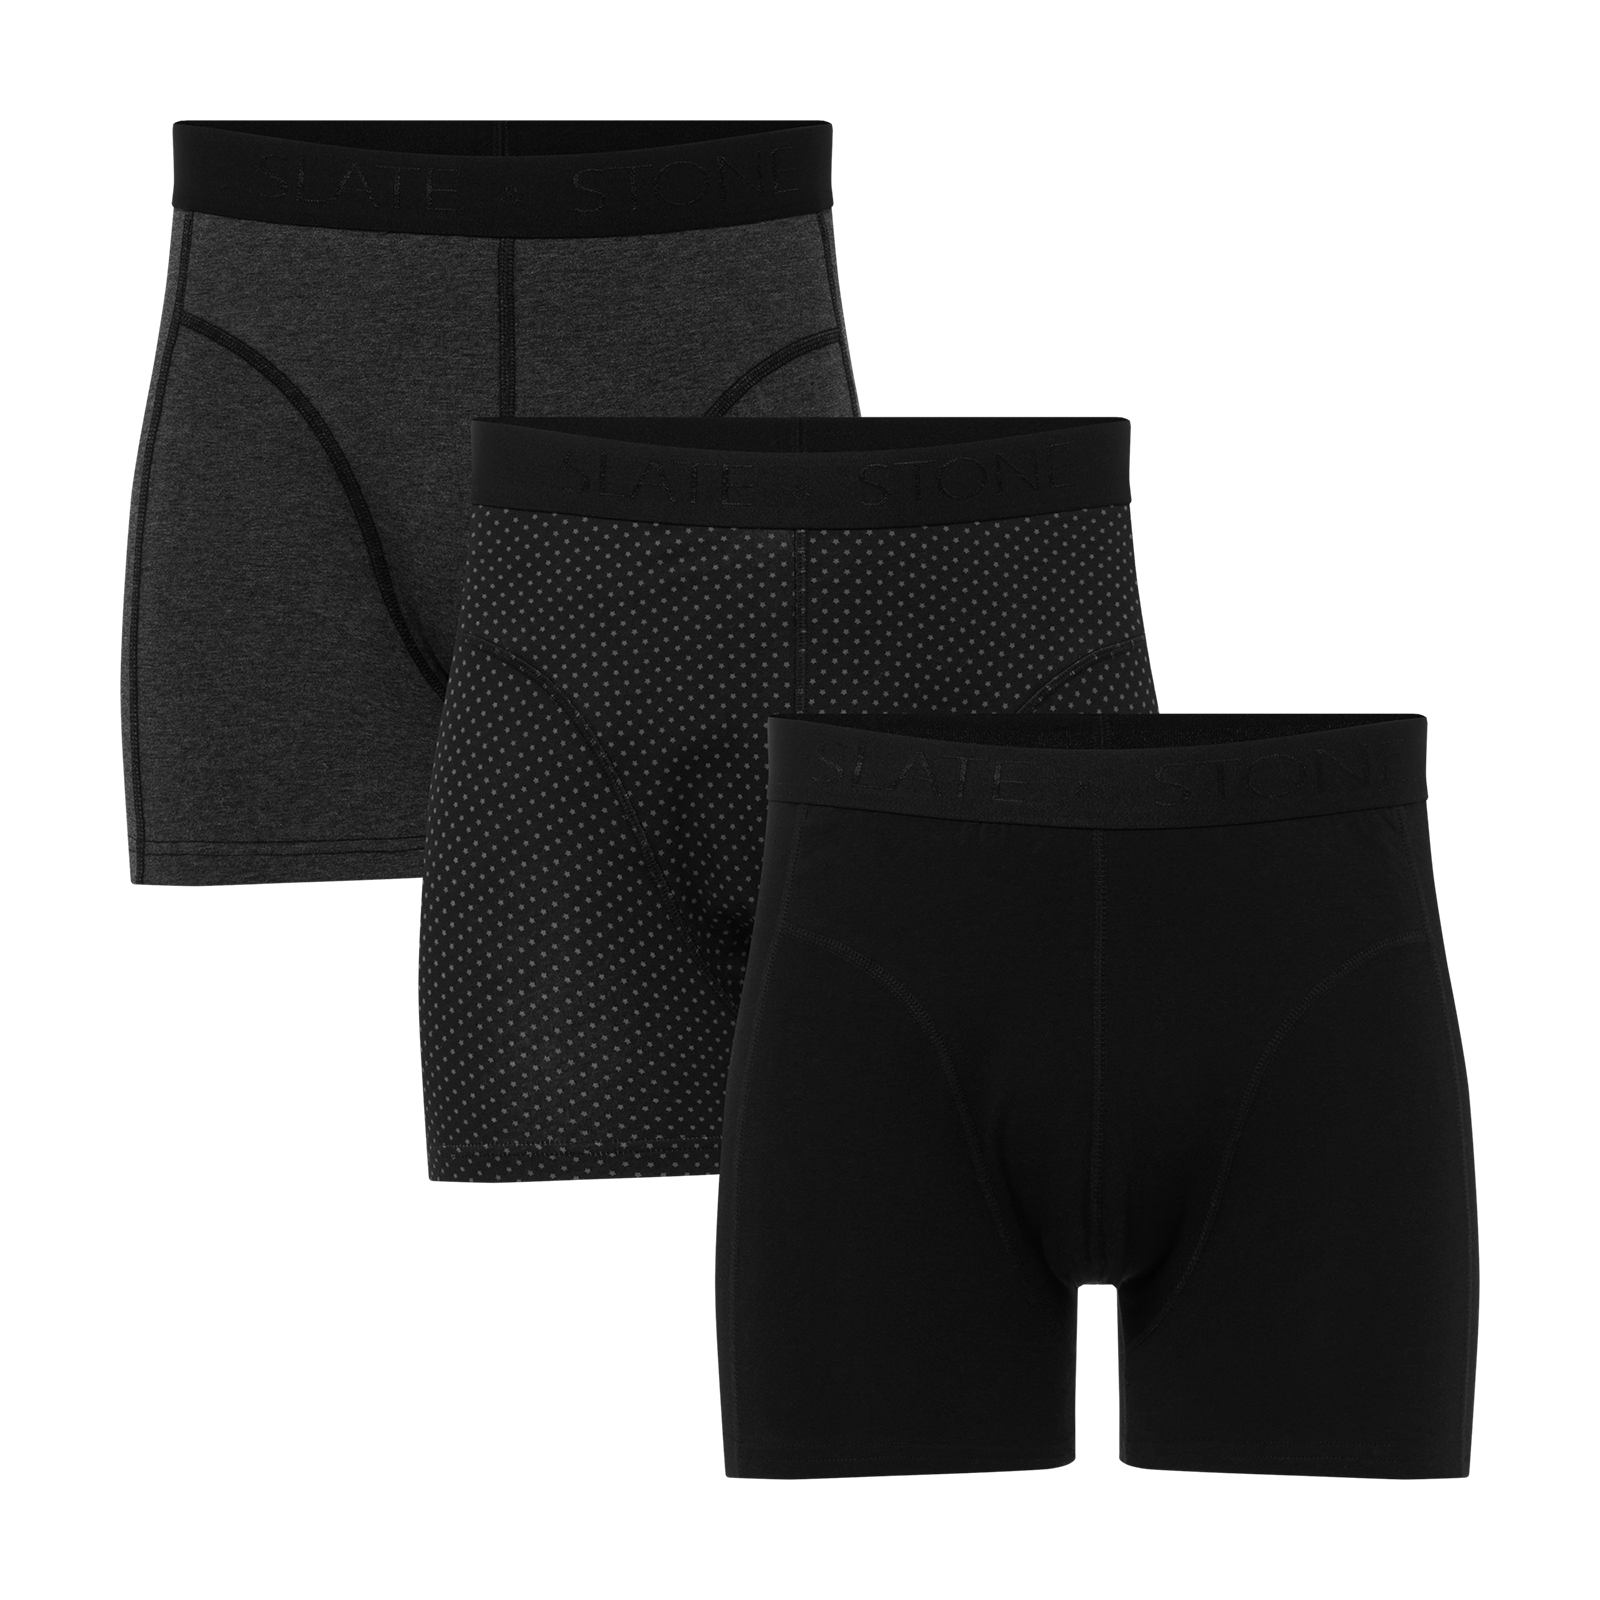 Underwear product image